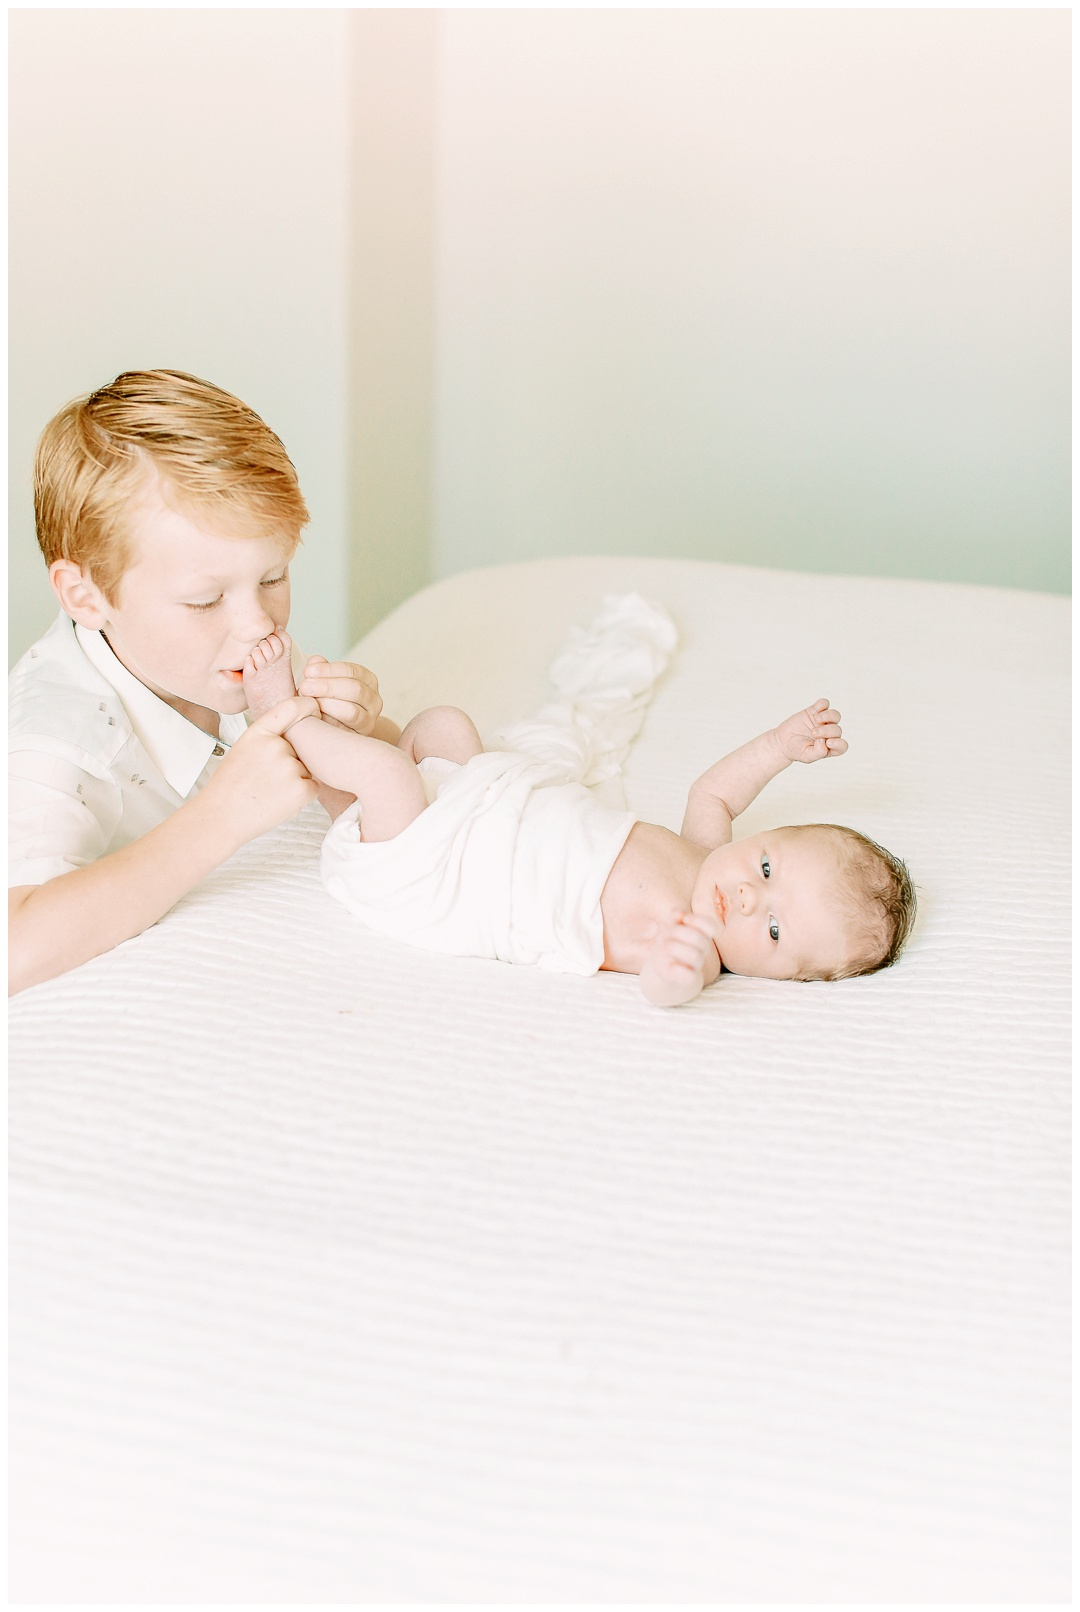 Newport_Beach_Newborn_Photographer_Lifestyle_Newborn_Photography_in_home_session_Cori_Kleckner_Photography_0954.jpg